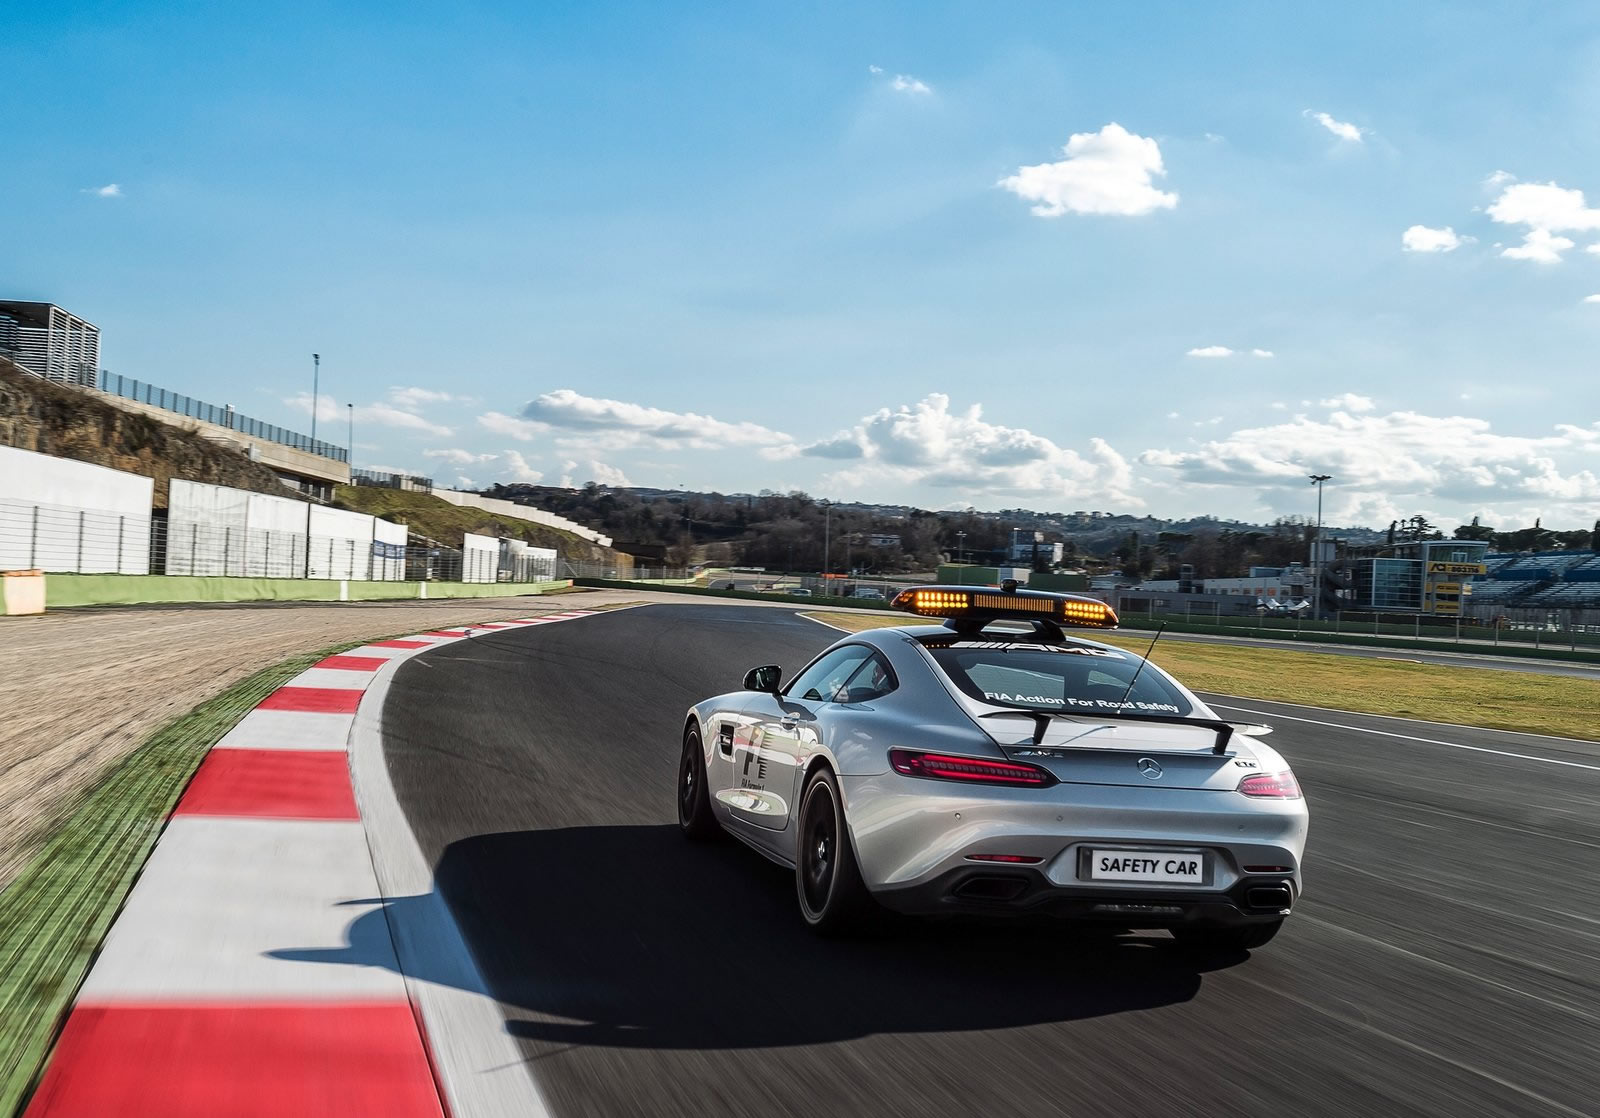 2019 Mercedes Benz AMG GT S F1 Safety Car photo - 3